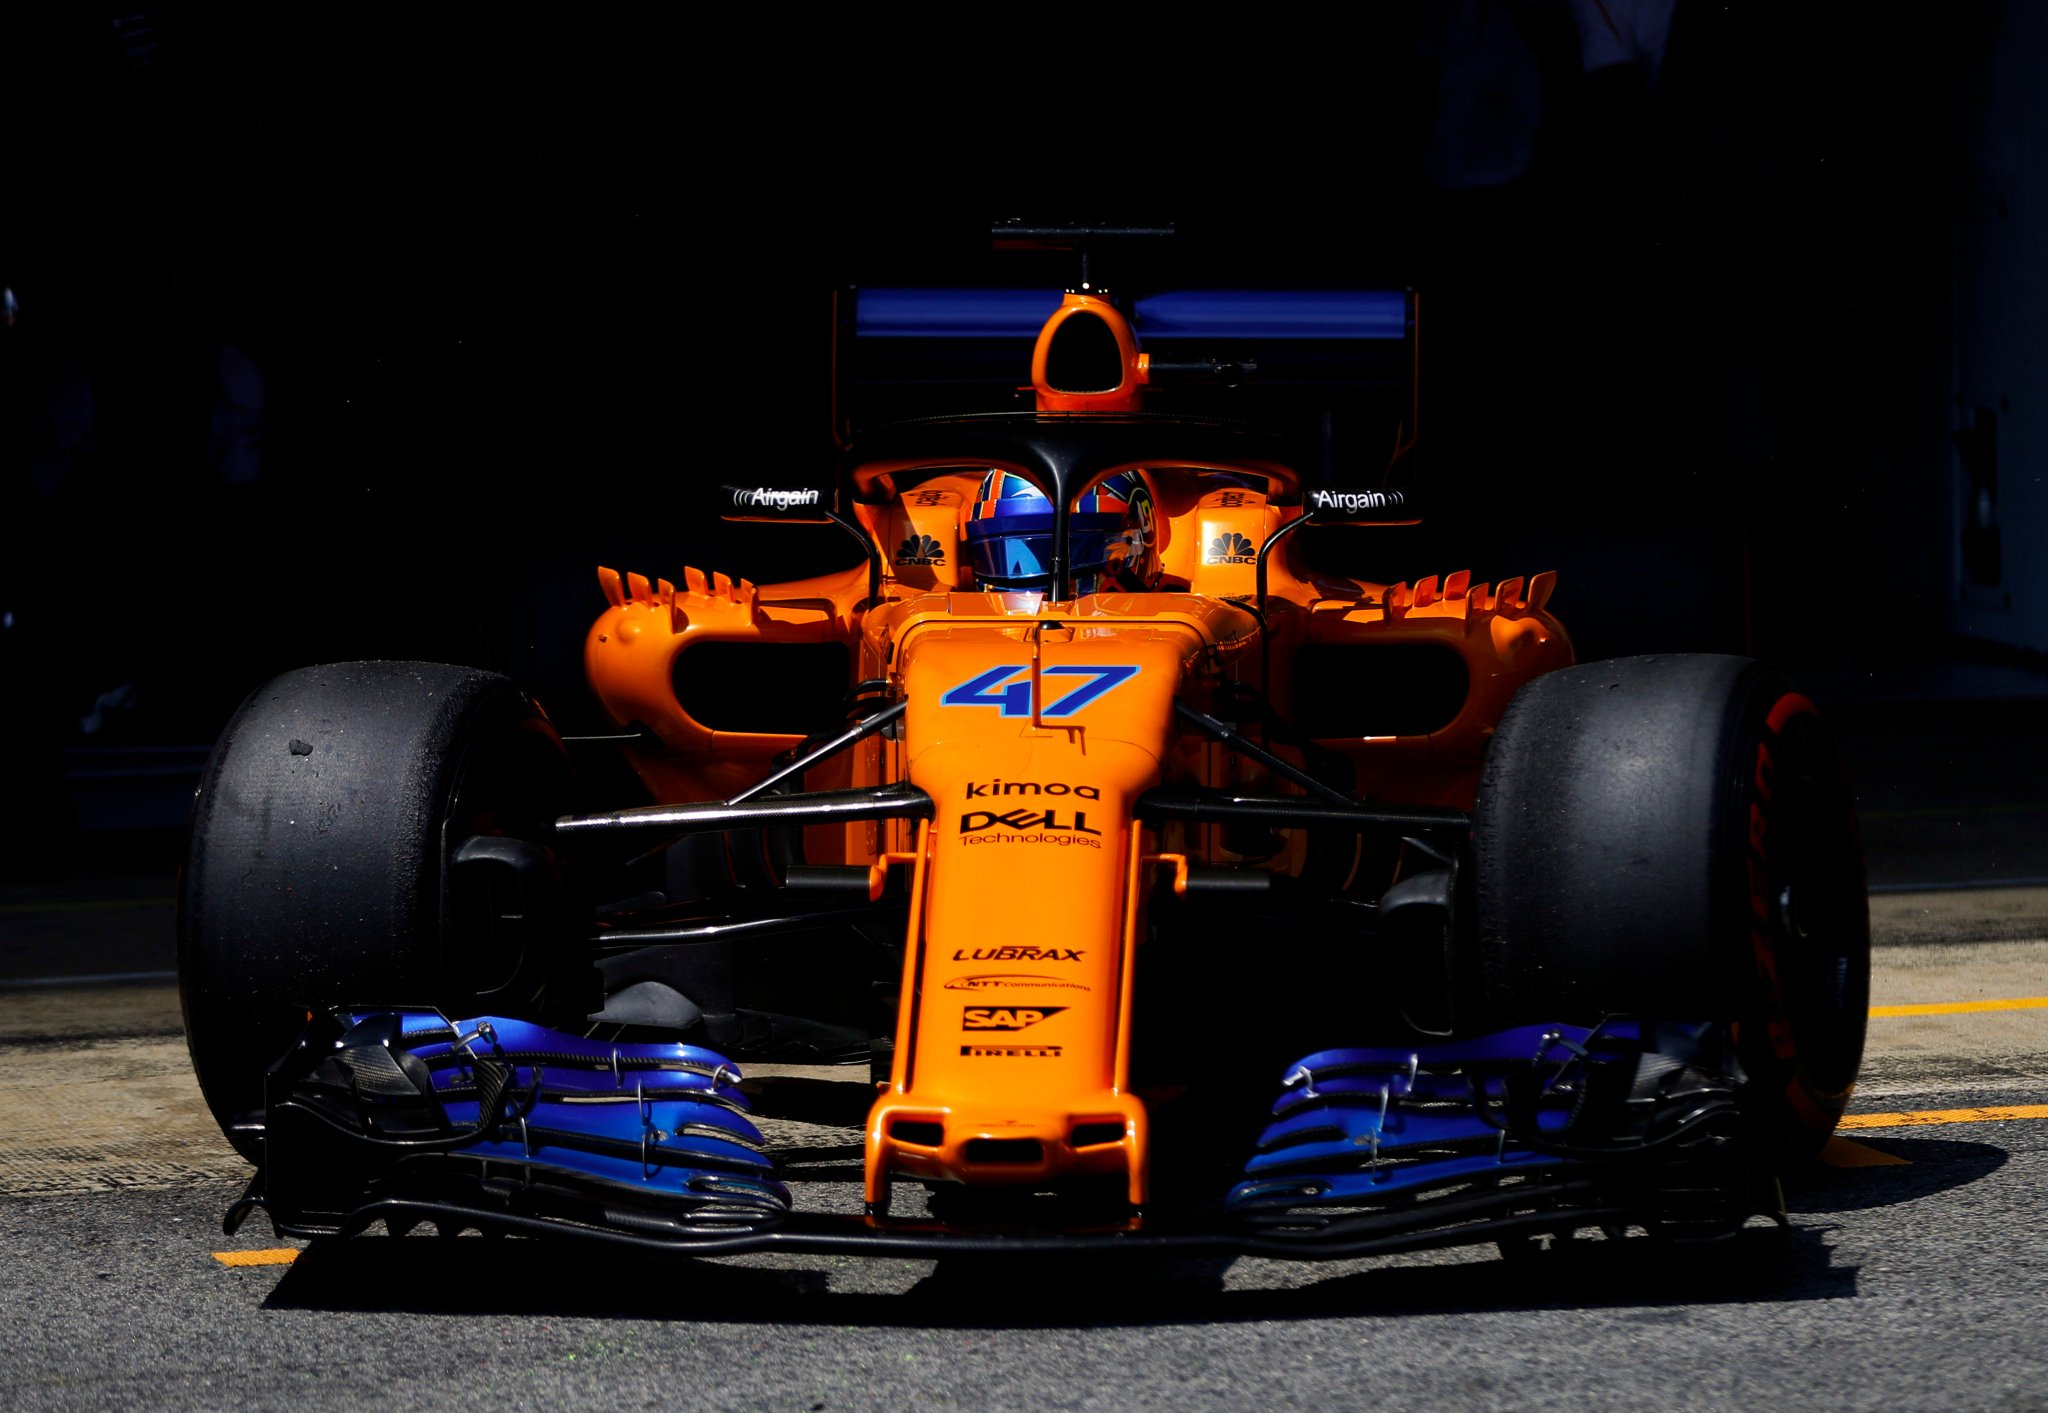 'We made a step forward here.' Our report from the second and final day of #F1Testing: https://t.co/75wuvLlPvZ ������ https://t.co/C2PP9gKQji